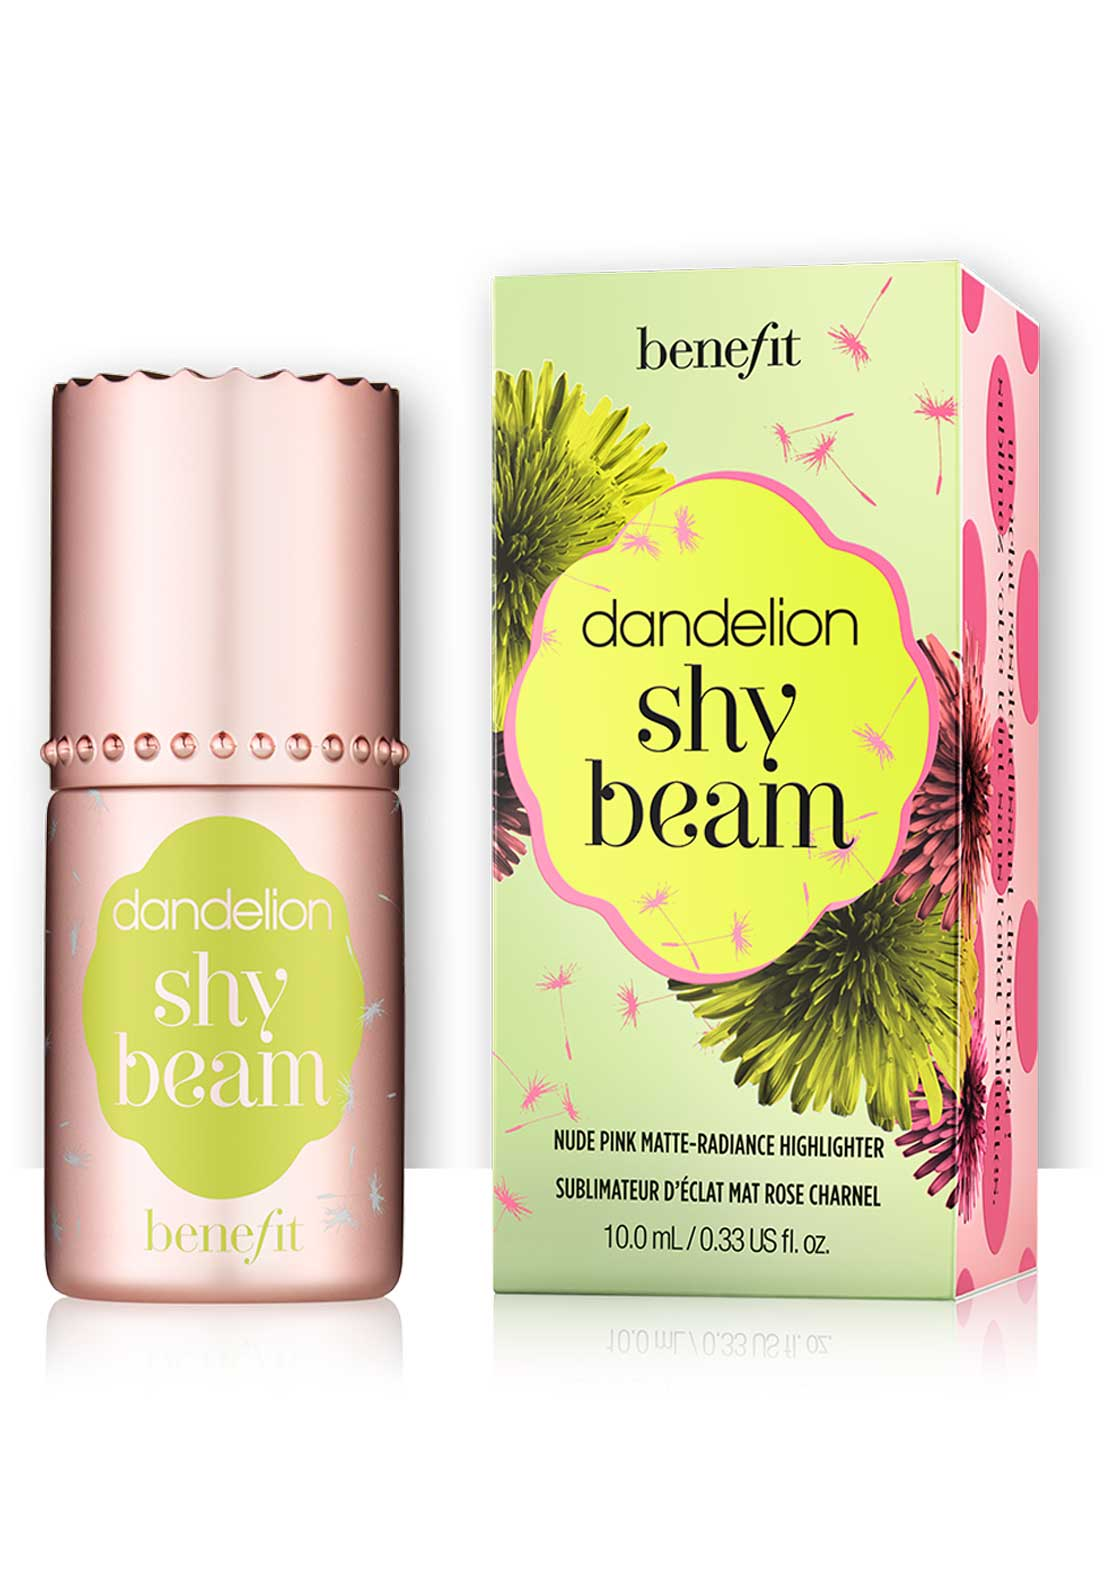 Benefit Dandelion Shy Beam Matte-Radiance Highlighter